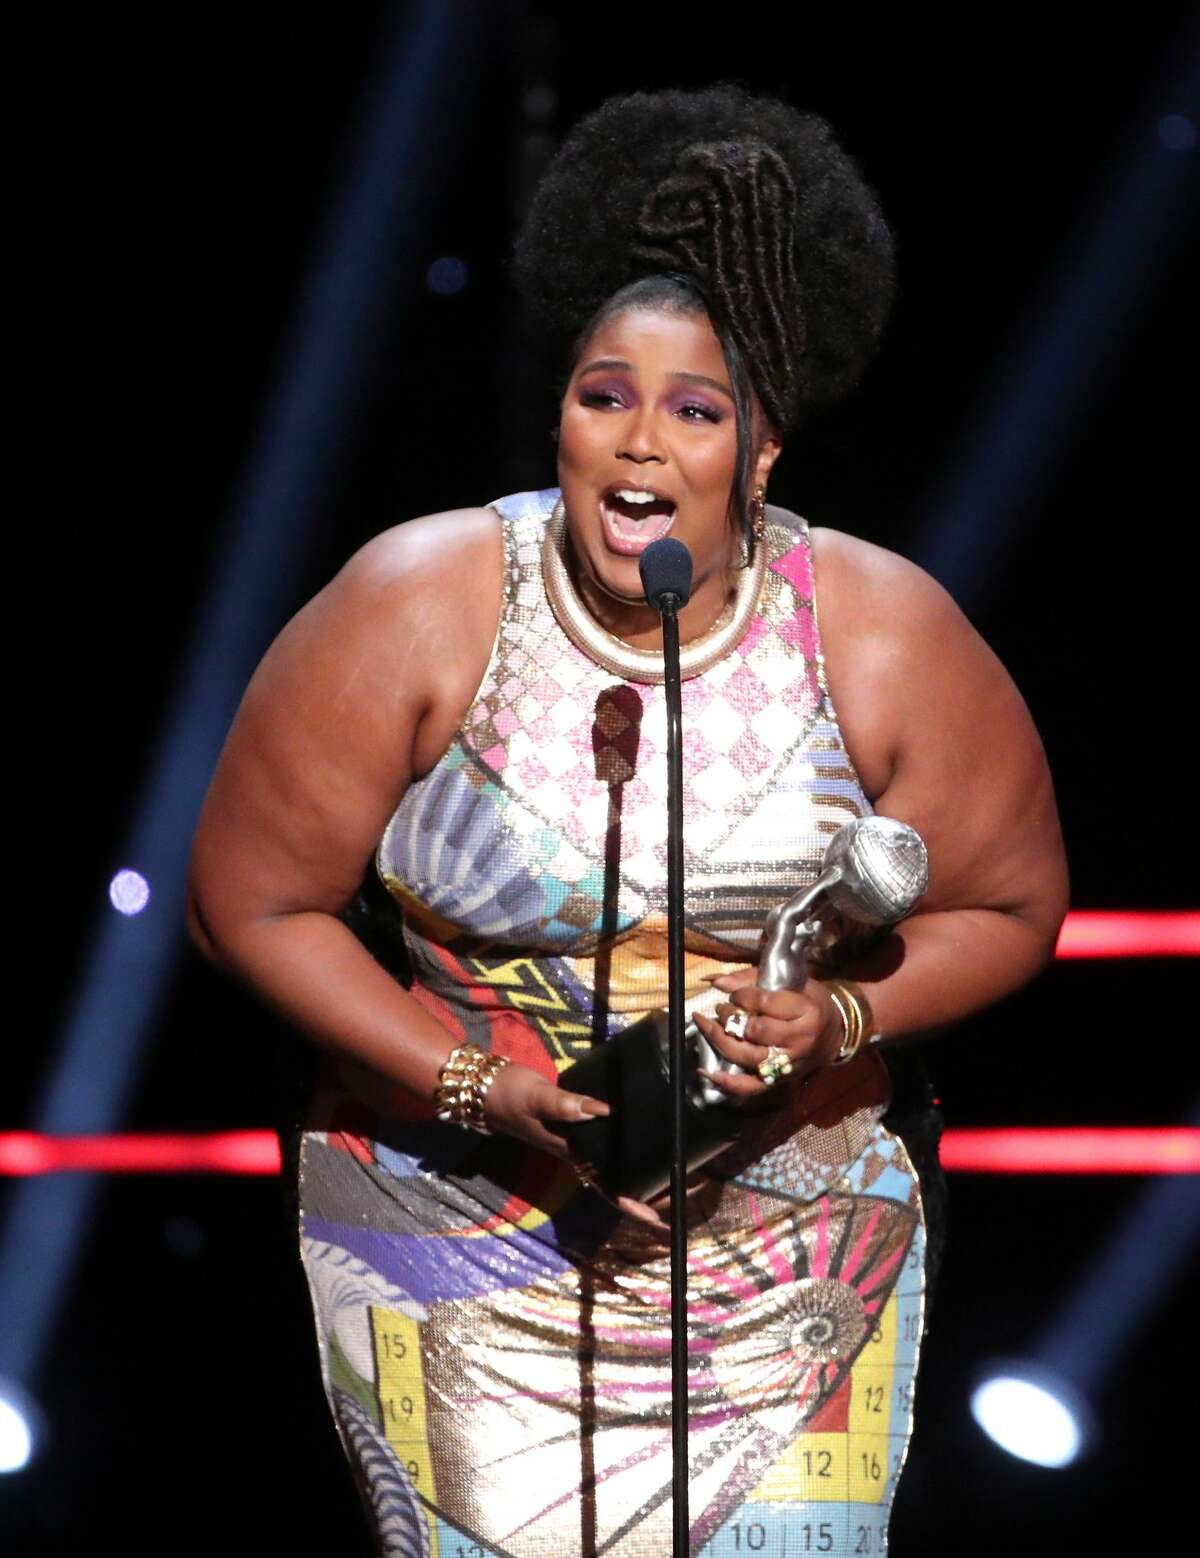 PASADENA, CALIFORNIA - FEBRUARY 22: Lizzo accepts Entertainer of the Year onstage during the 51st NAACP Image Awards, Presented by BET, at Pasadena Civic Auditorium on February 22, 2020 in Pasadena, California. (Photo by Rich Fury/Getty Images)